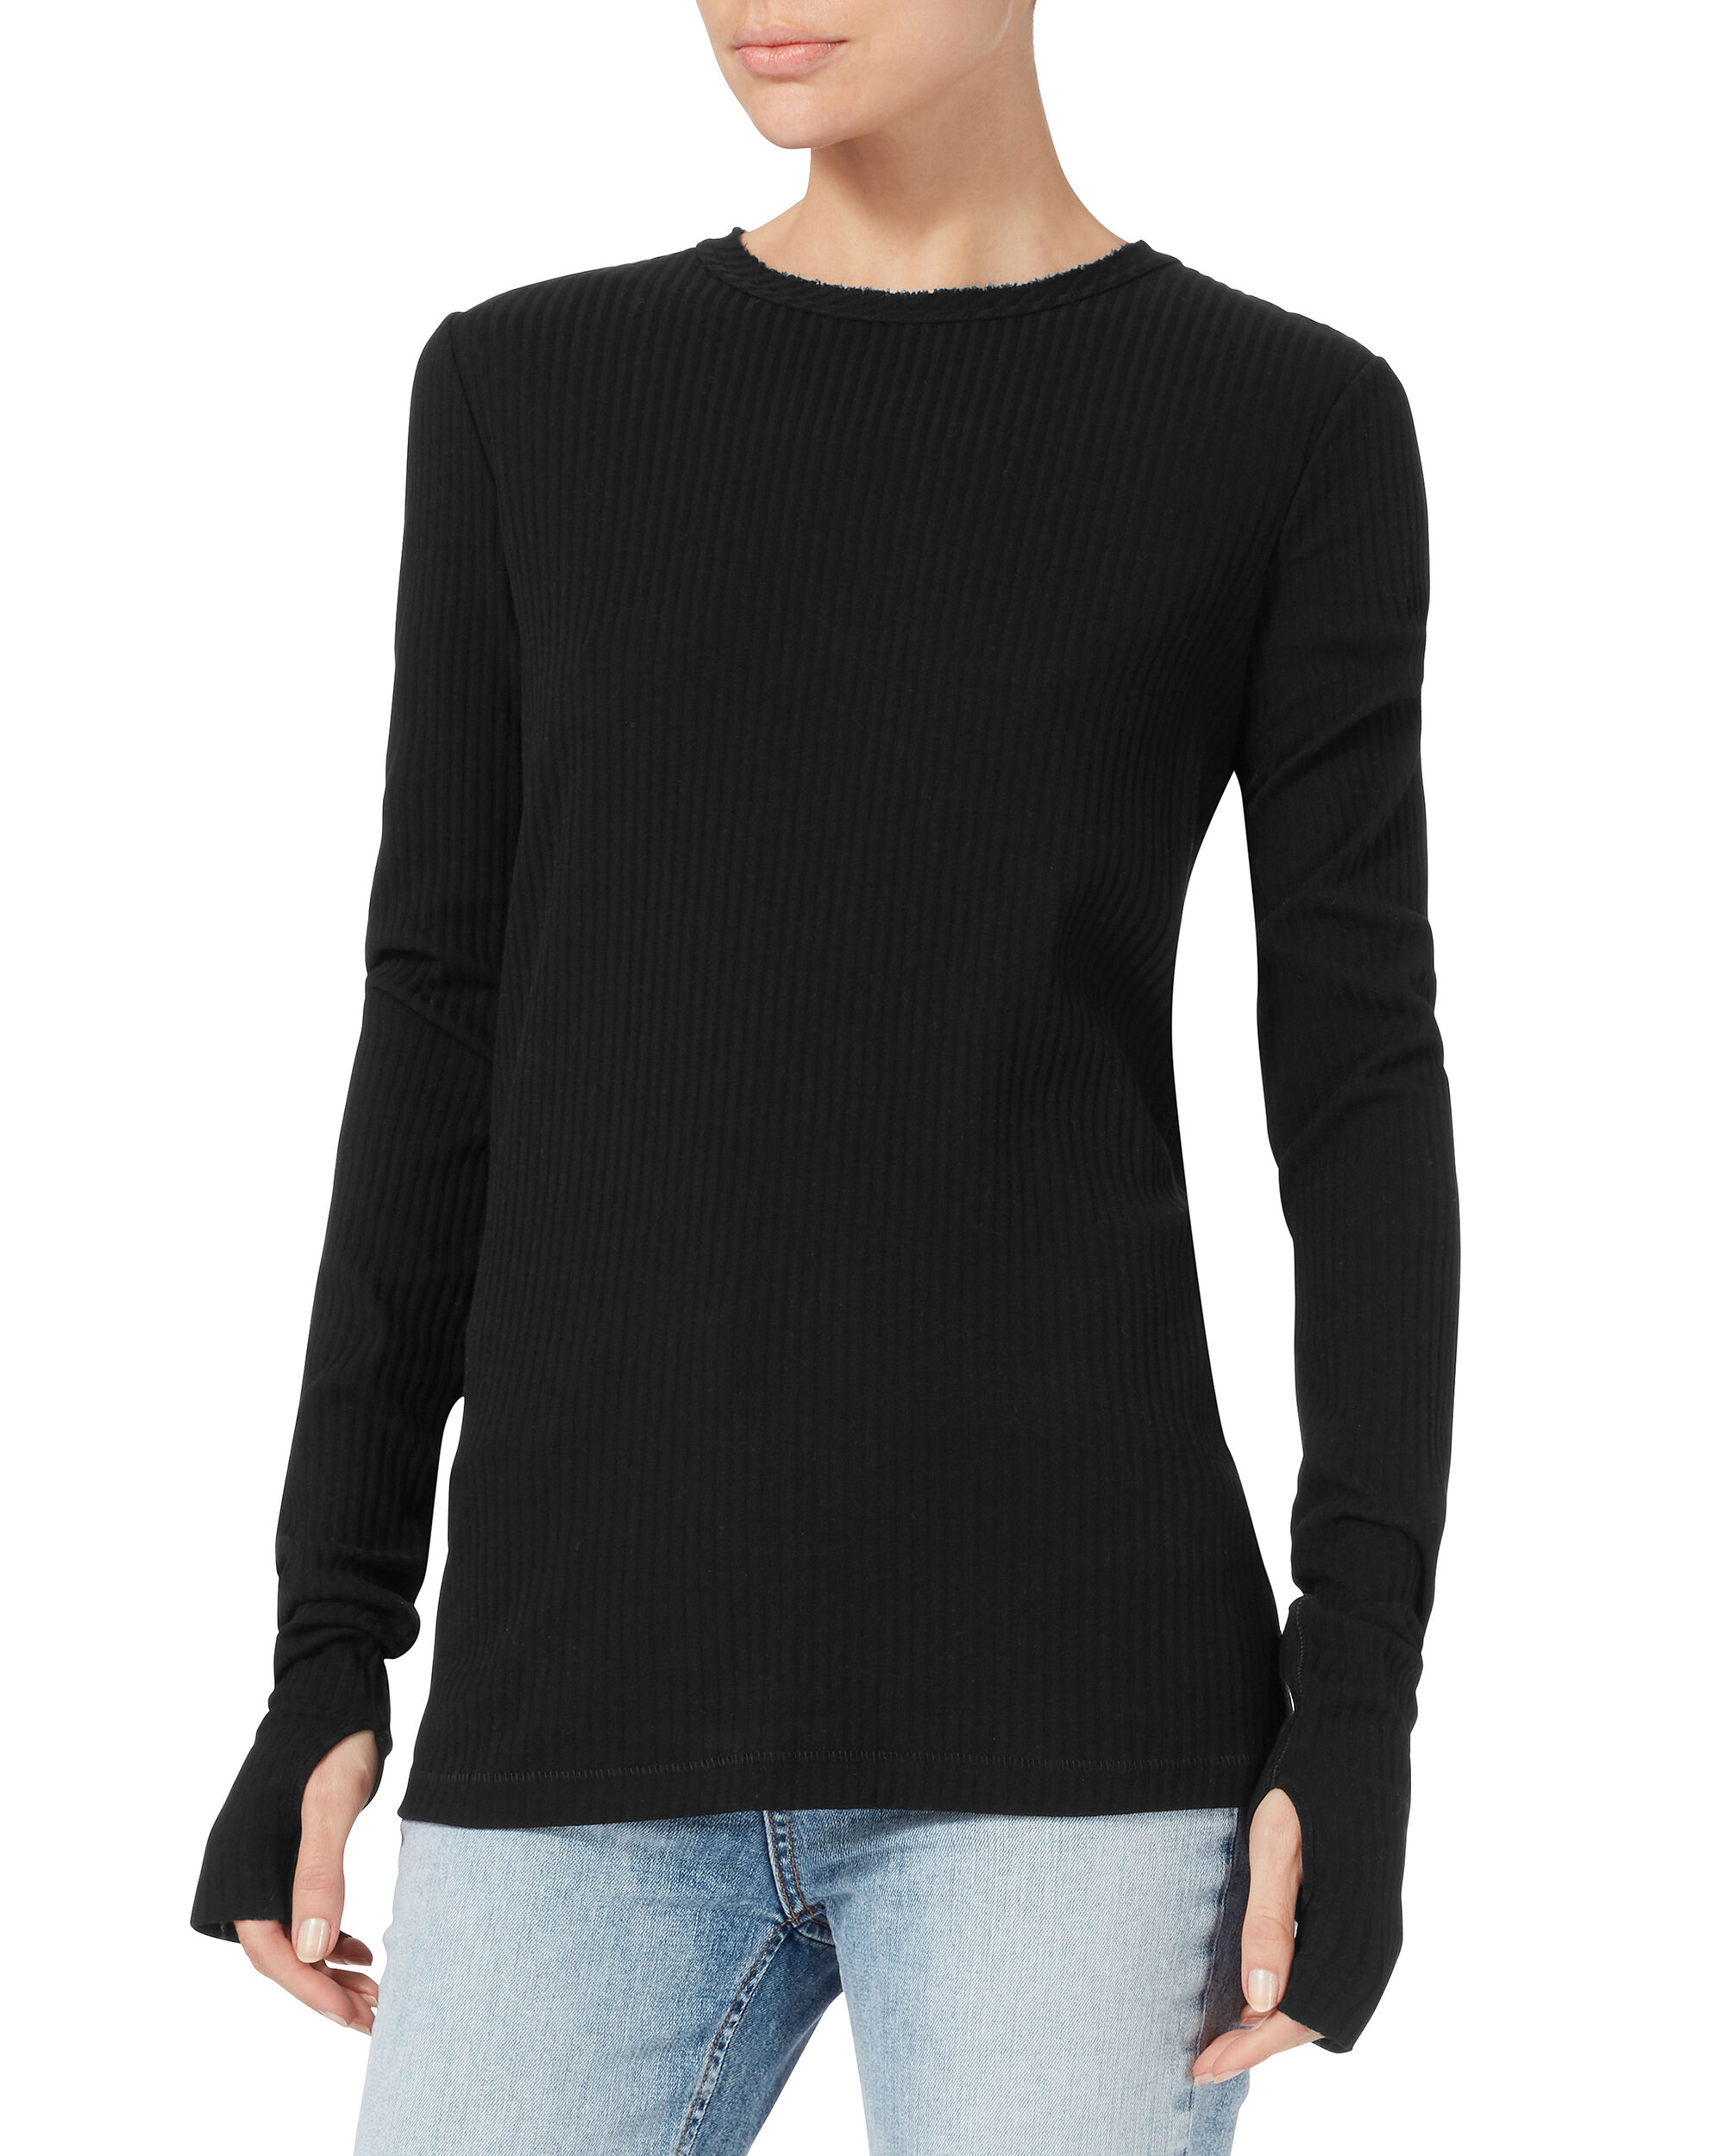 Thumbhole Rib Black Top, BLACK, hi-res